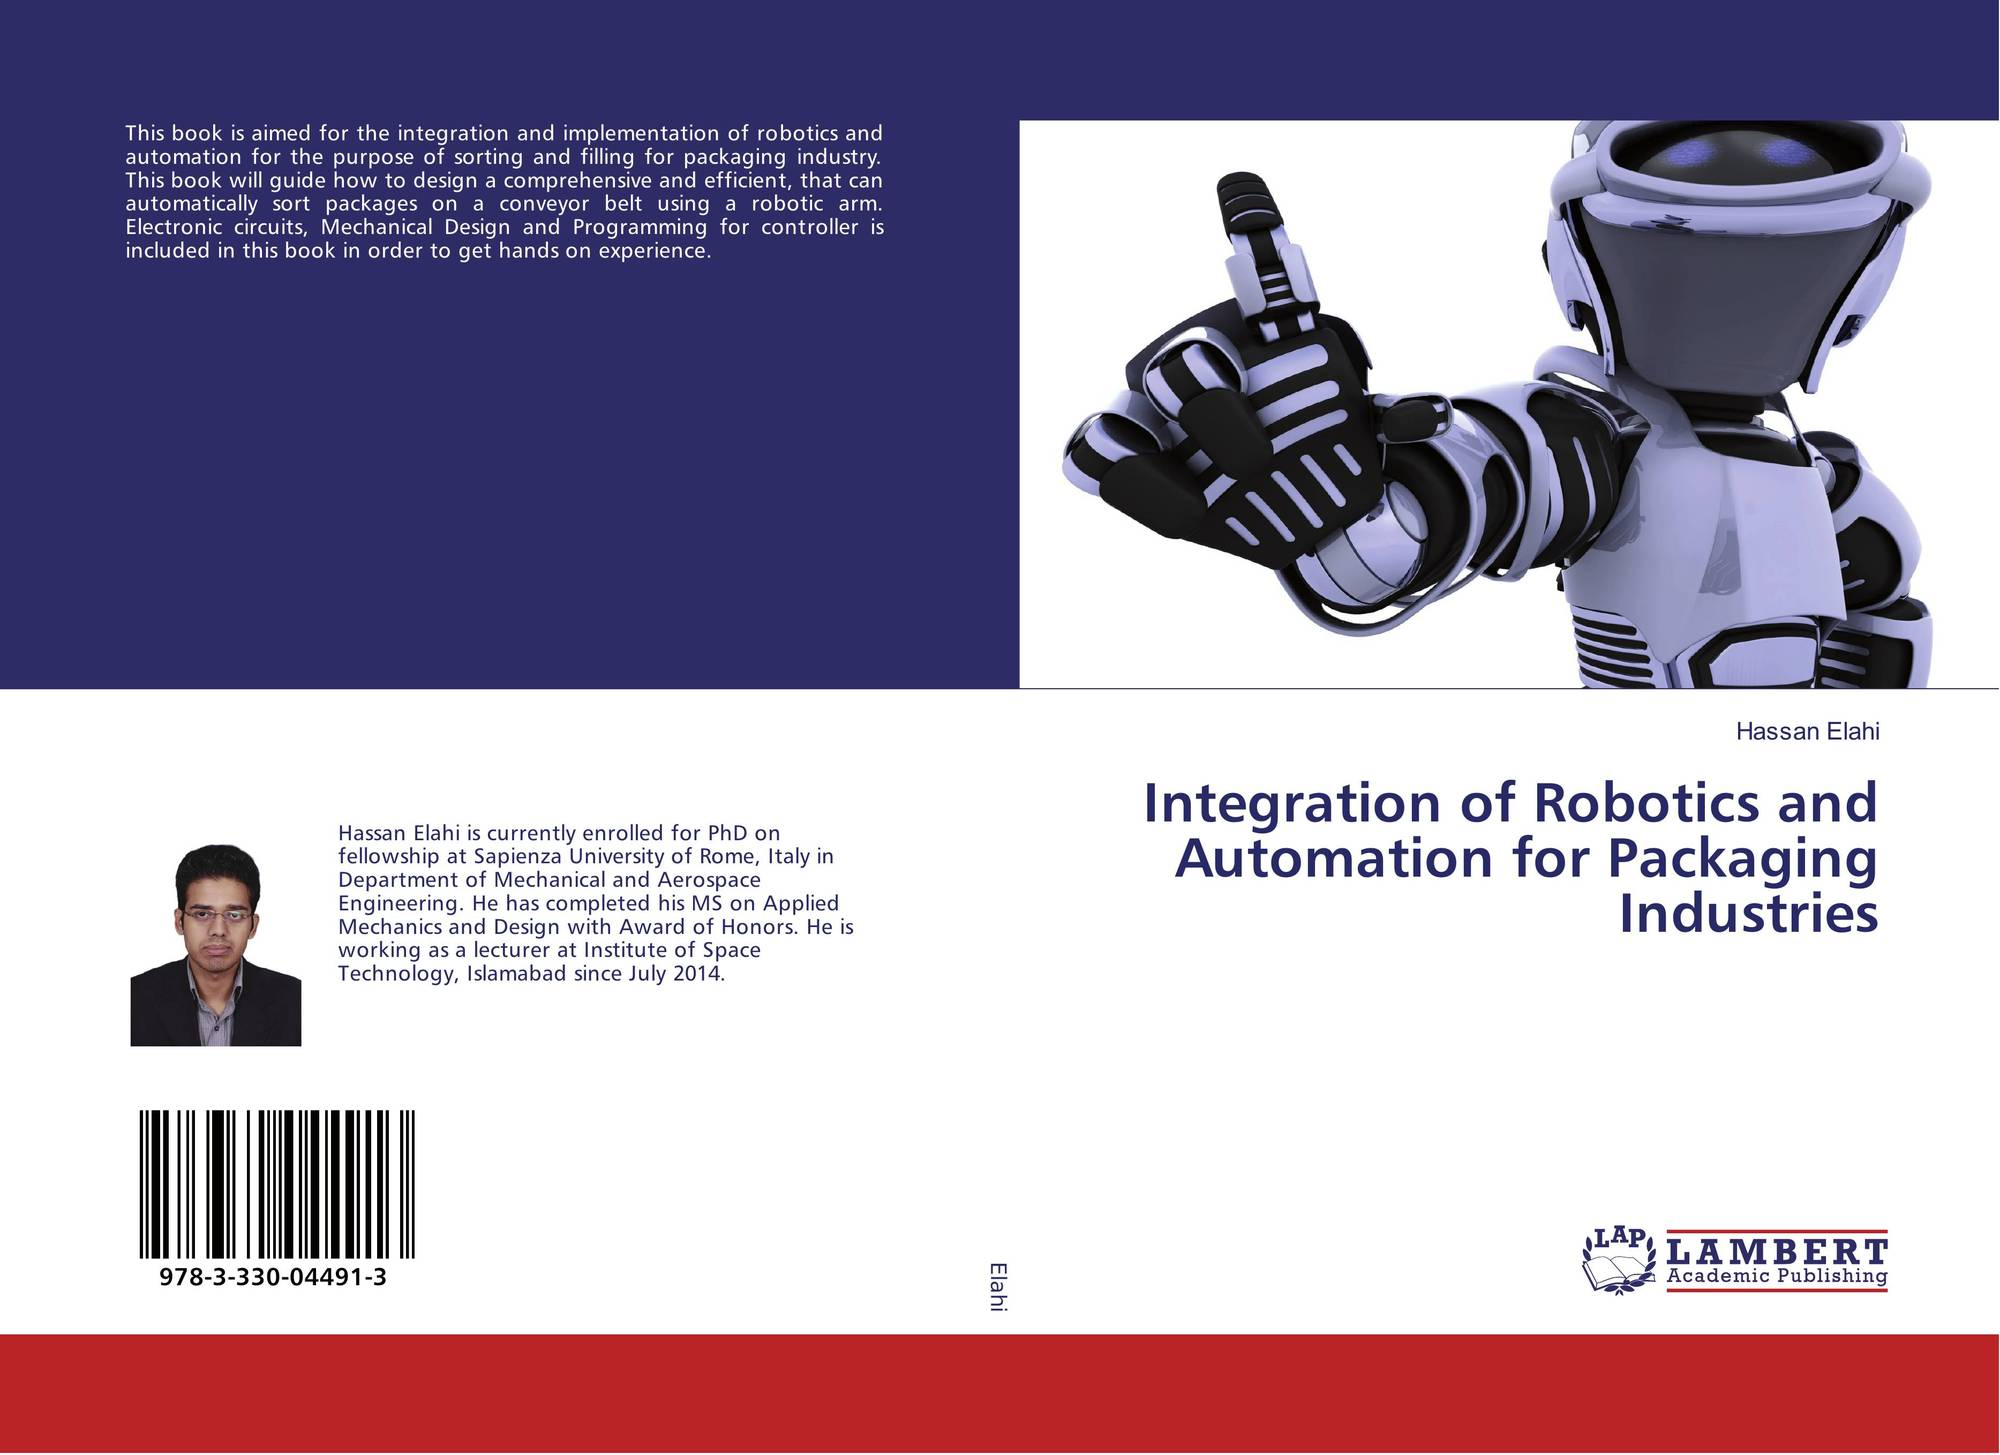 Integration of Robotics and Automation for Packaging Industries, 978